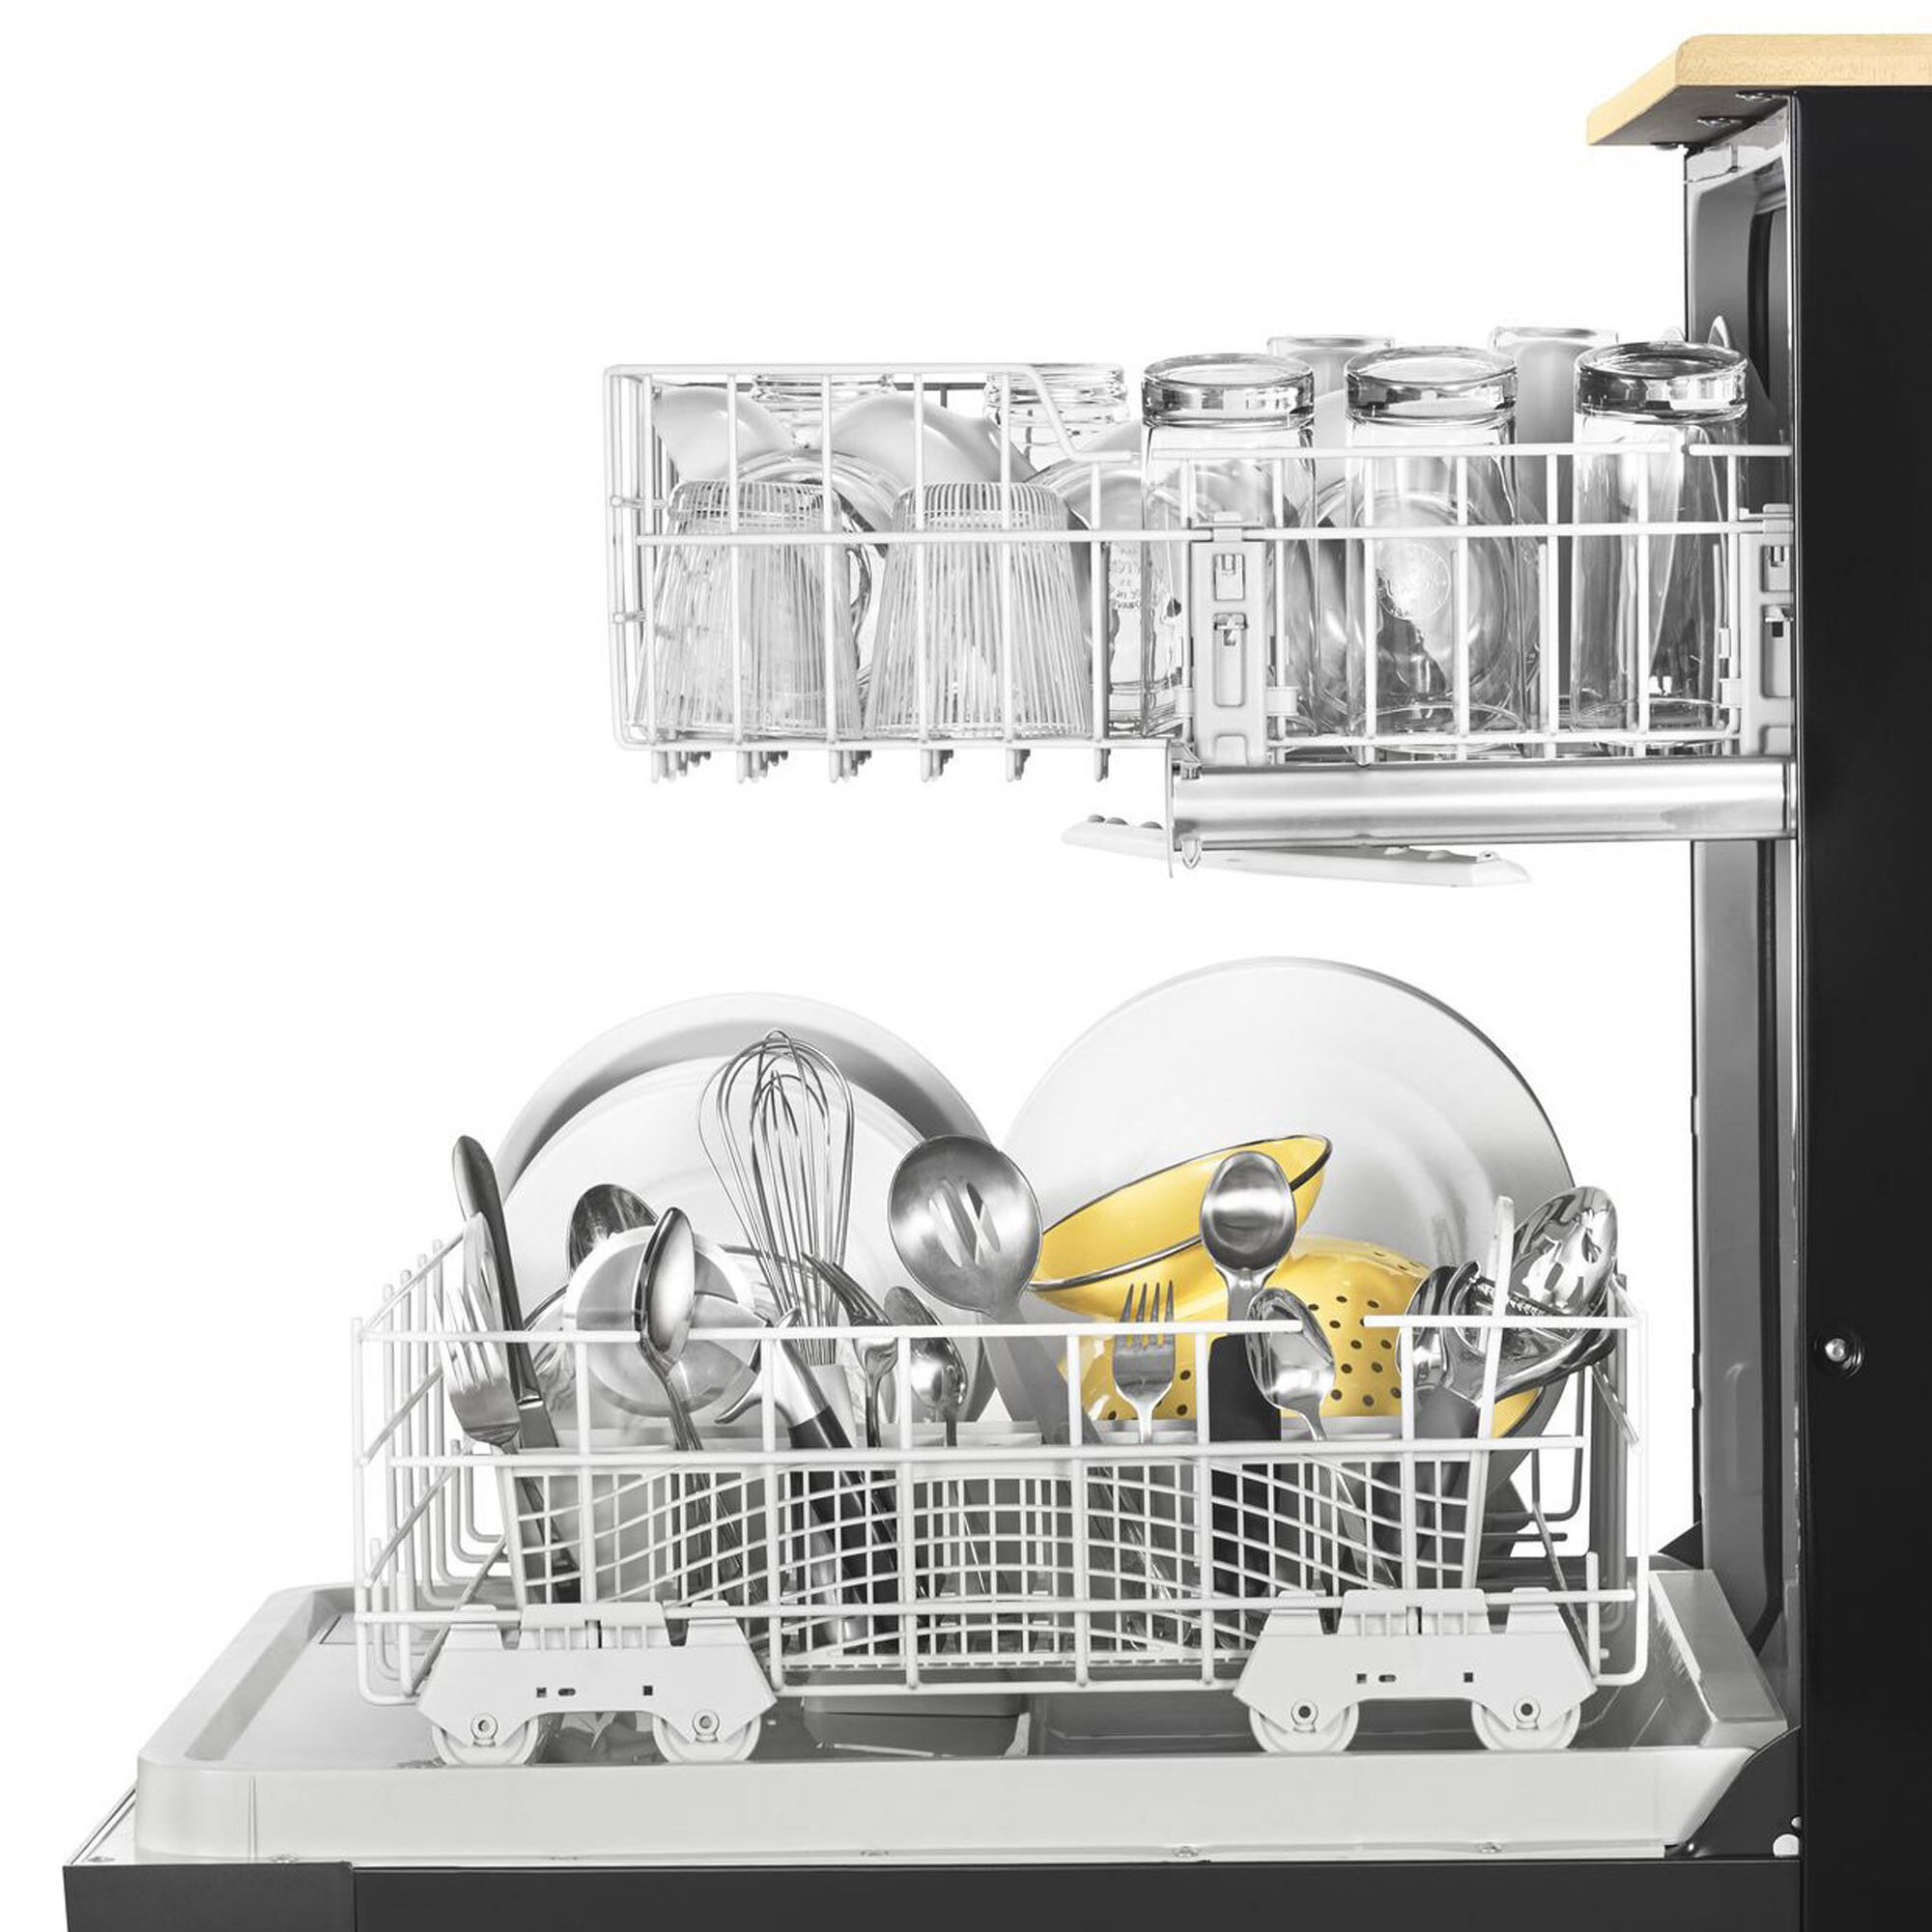 18 Portable Dishwasher Canada Portable Dishwasher Rent To Own